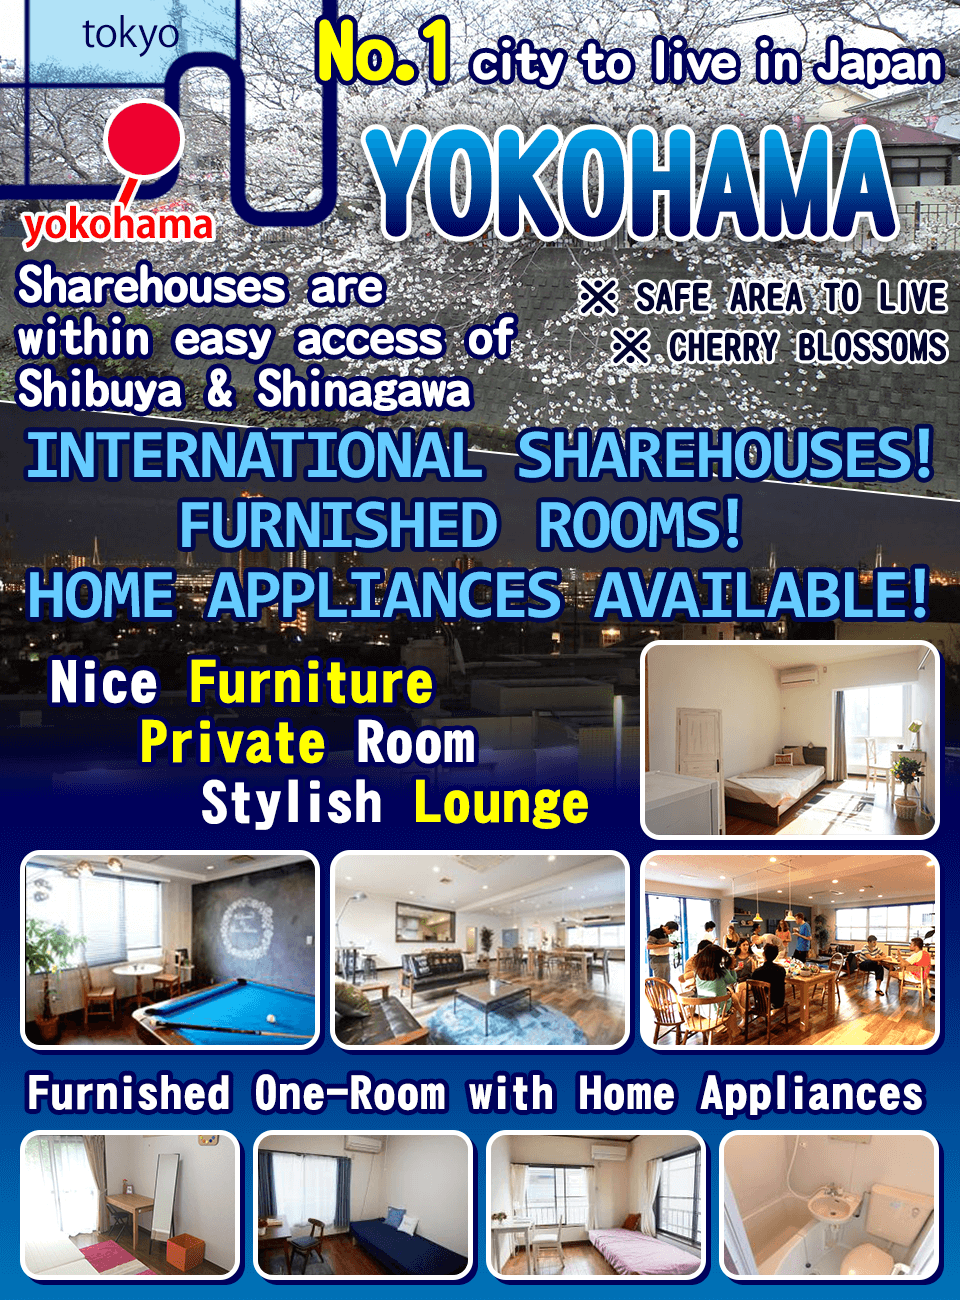 One of the most popular cities in Japan! Sharehouses in Yokohama!